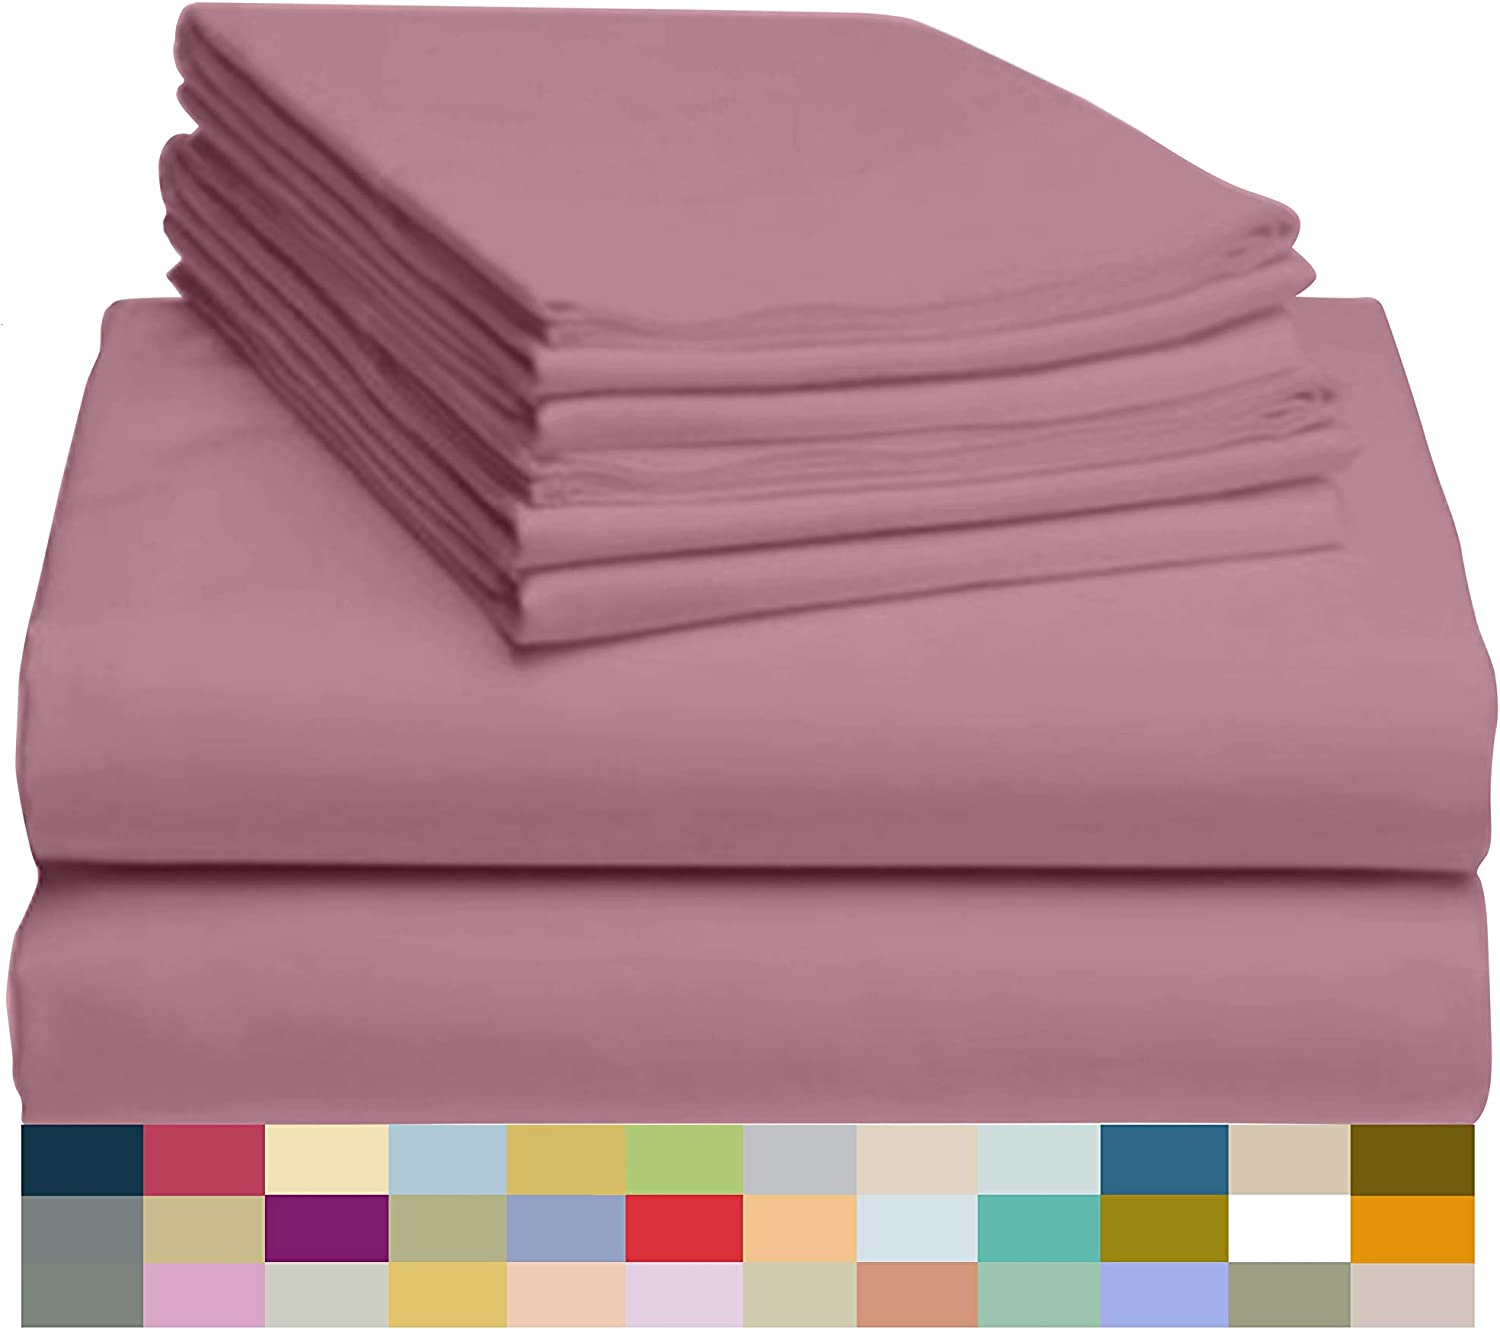 "LuxClub 6 PC Sheet Set Bamboo Sheets Deep Pockets 18"" Eco Friendly Wrinkle Free Sheets Hypoallergenic Anti-Bacteria Machine Washable Hotel Bedding Silky Soft - Light Plum Full"